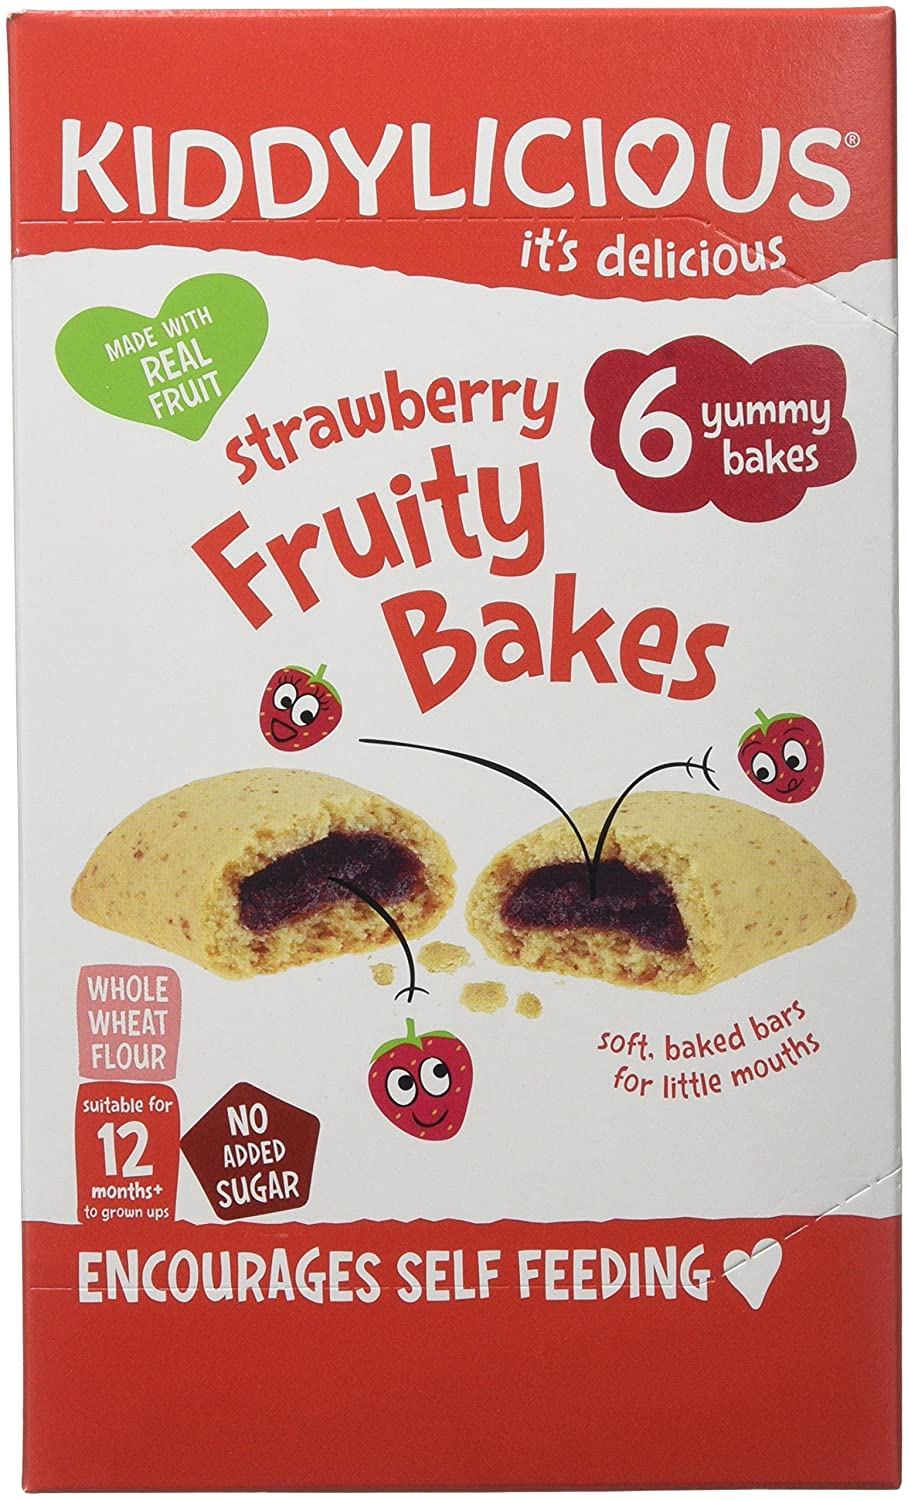 Kiddylicious Strawberry Bakes Fruity, 132 g, Pack of 8 The Kids Food Co. 1080160